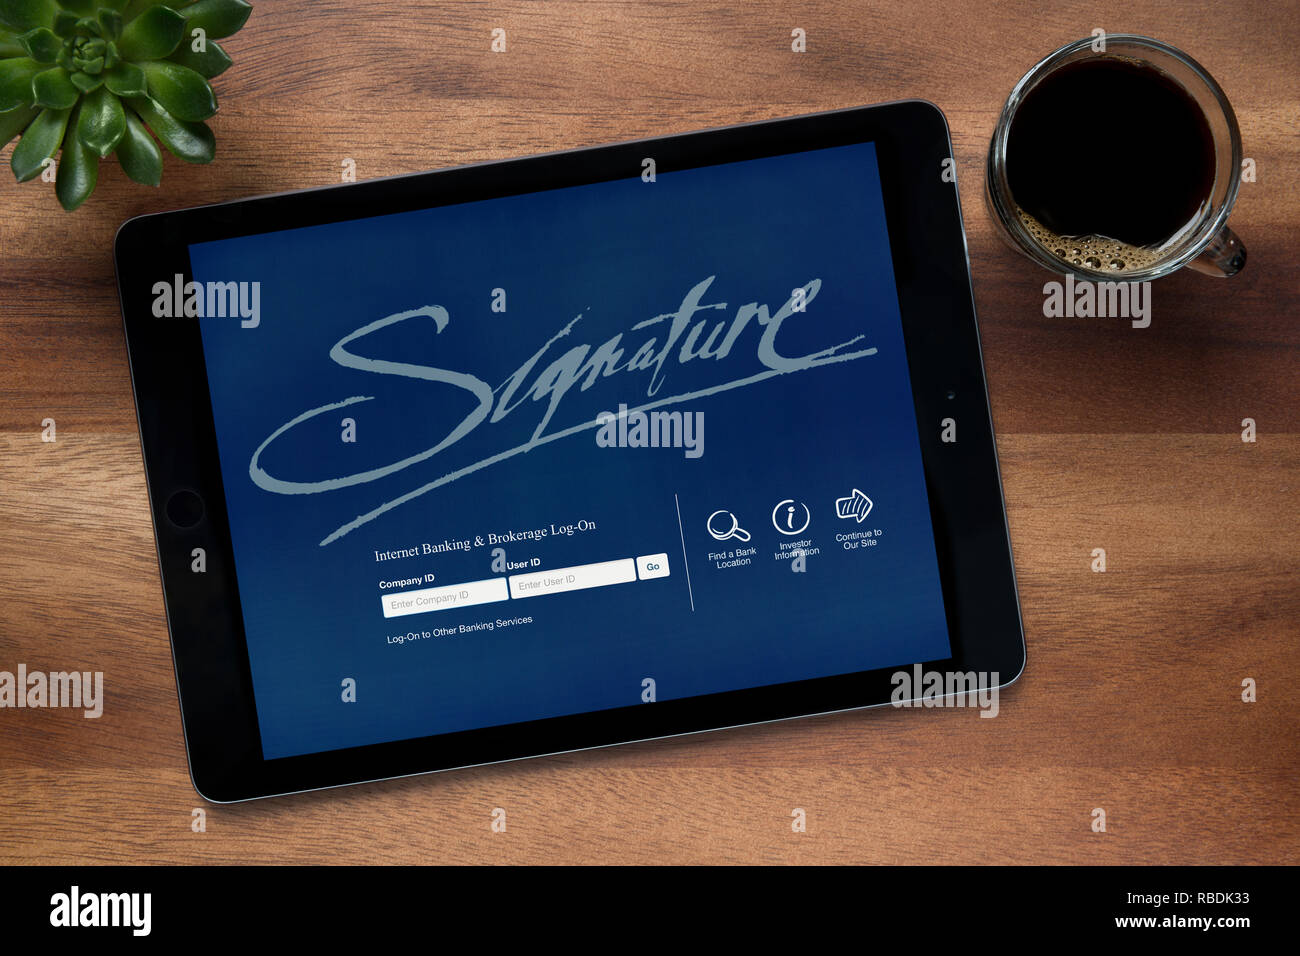 The website of Signature Internet Banking is seen on an iPad tablet, resting on a wooden table (Editorial use only). - Stock Image